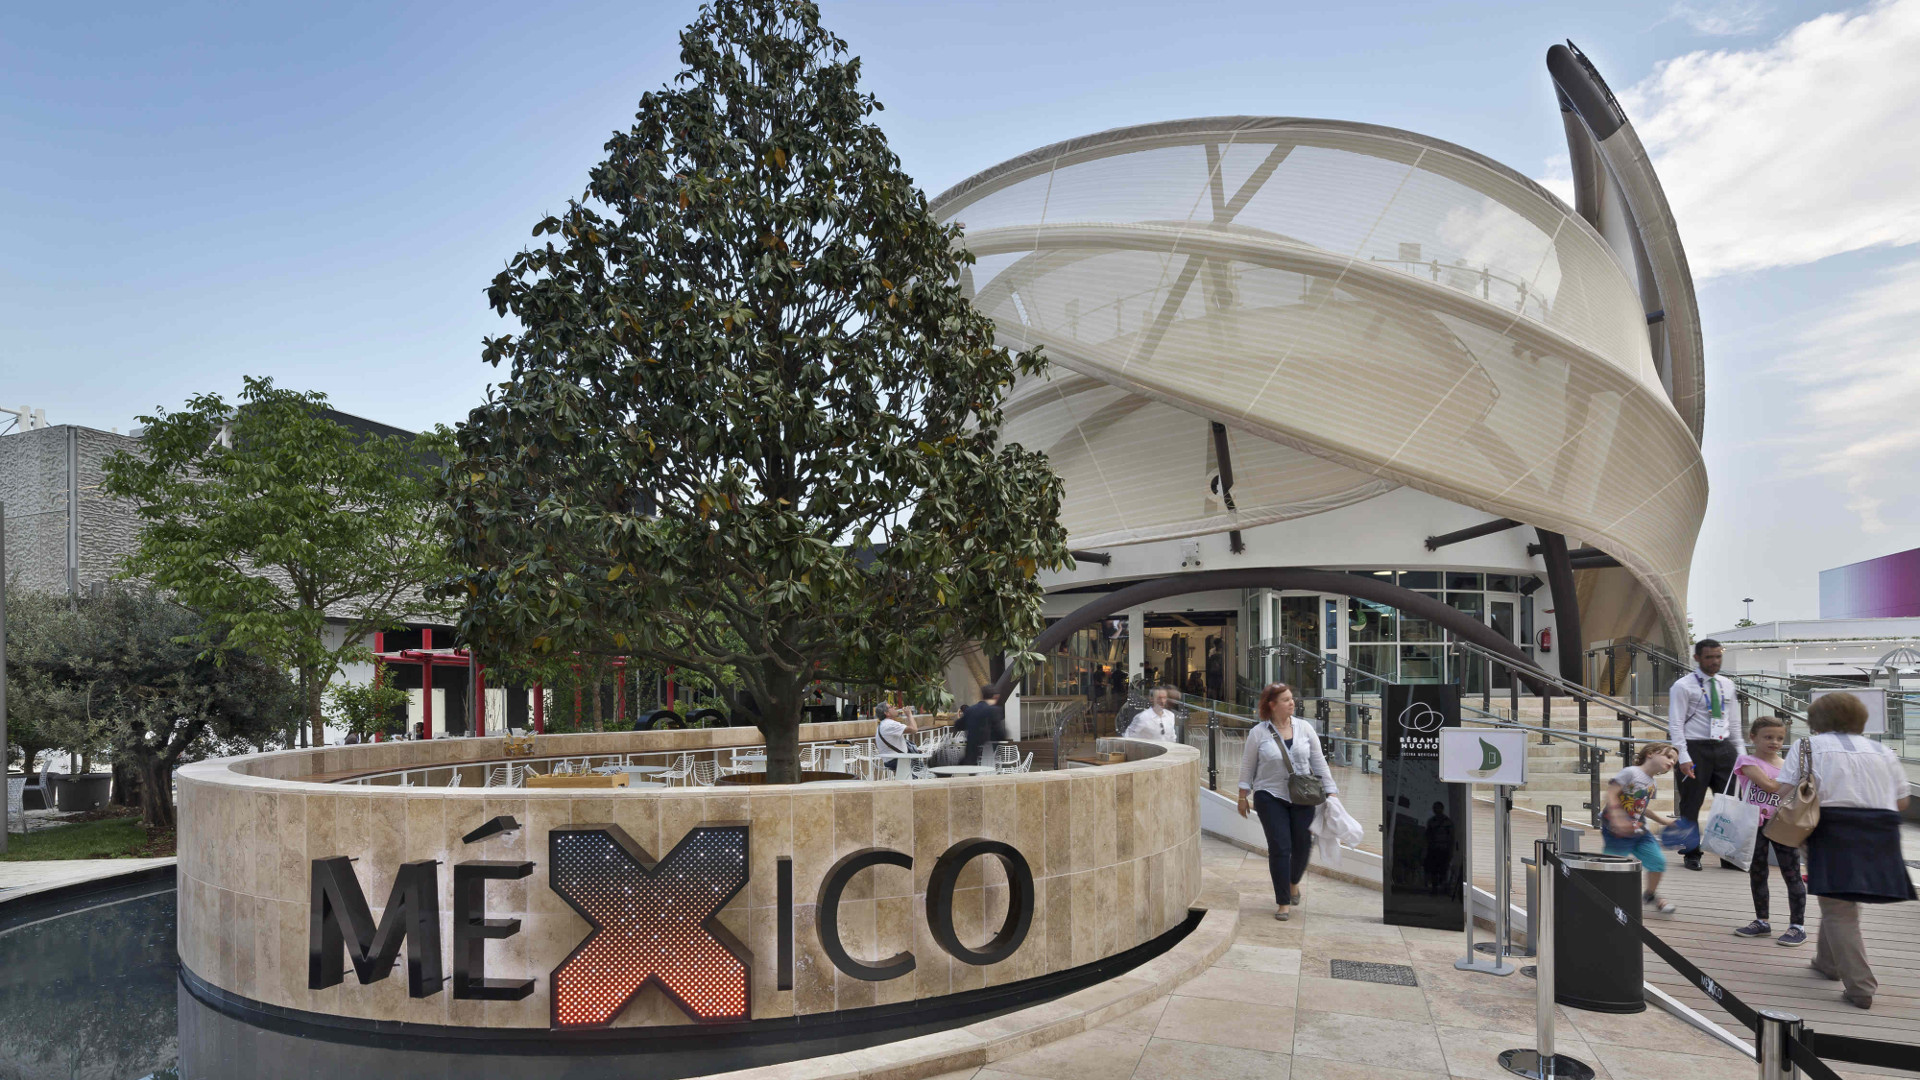 Picture of Mexico Pavilion – EXPO 2015 by Pietre di Rapolano